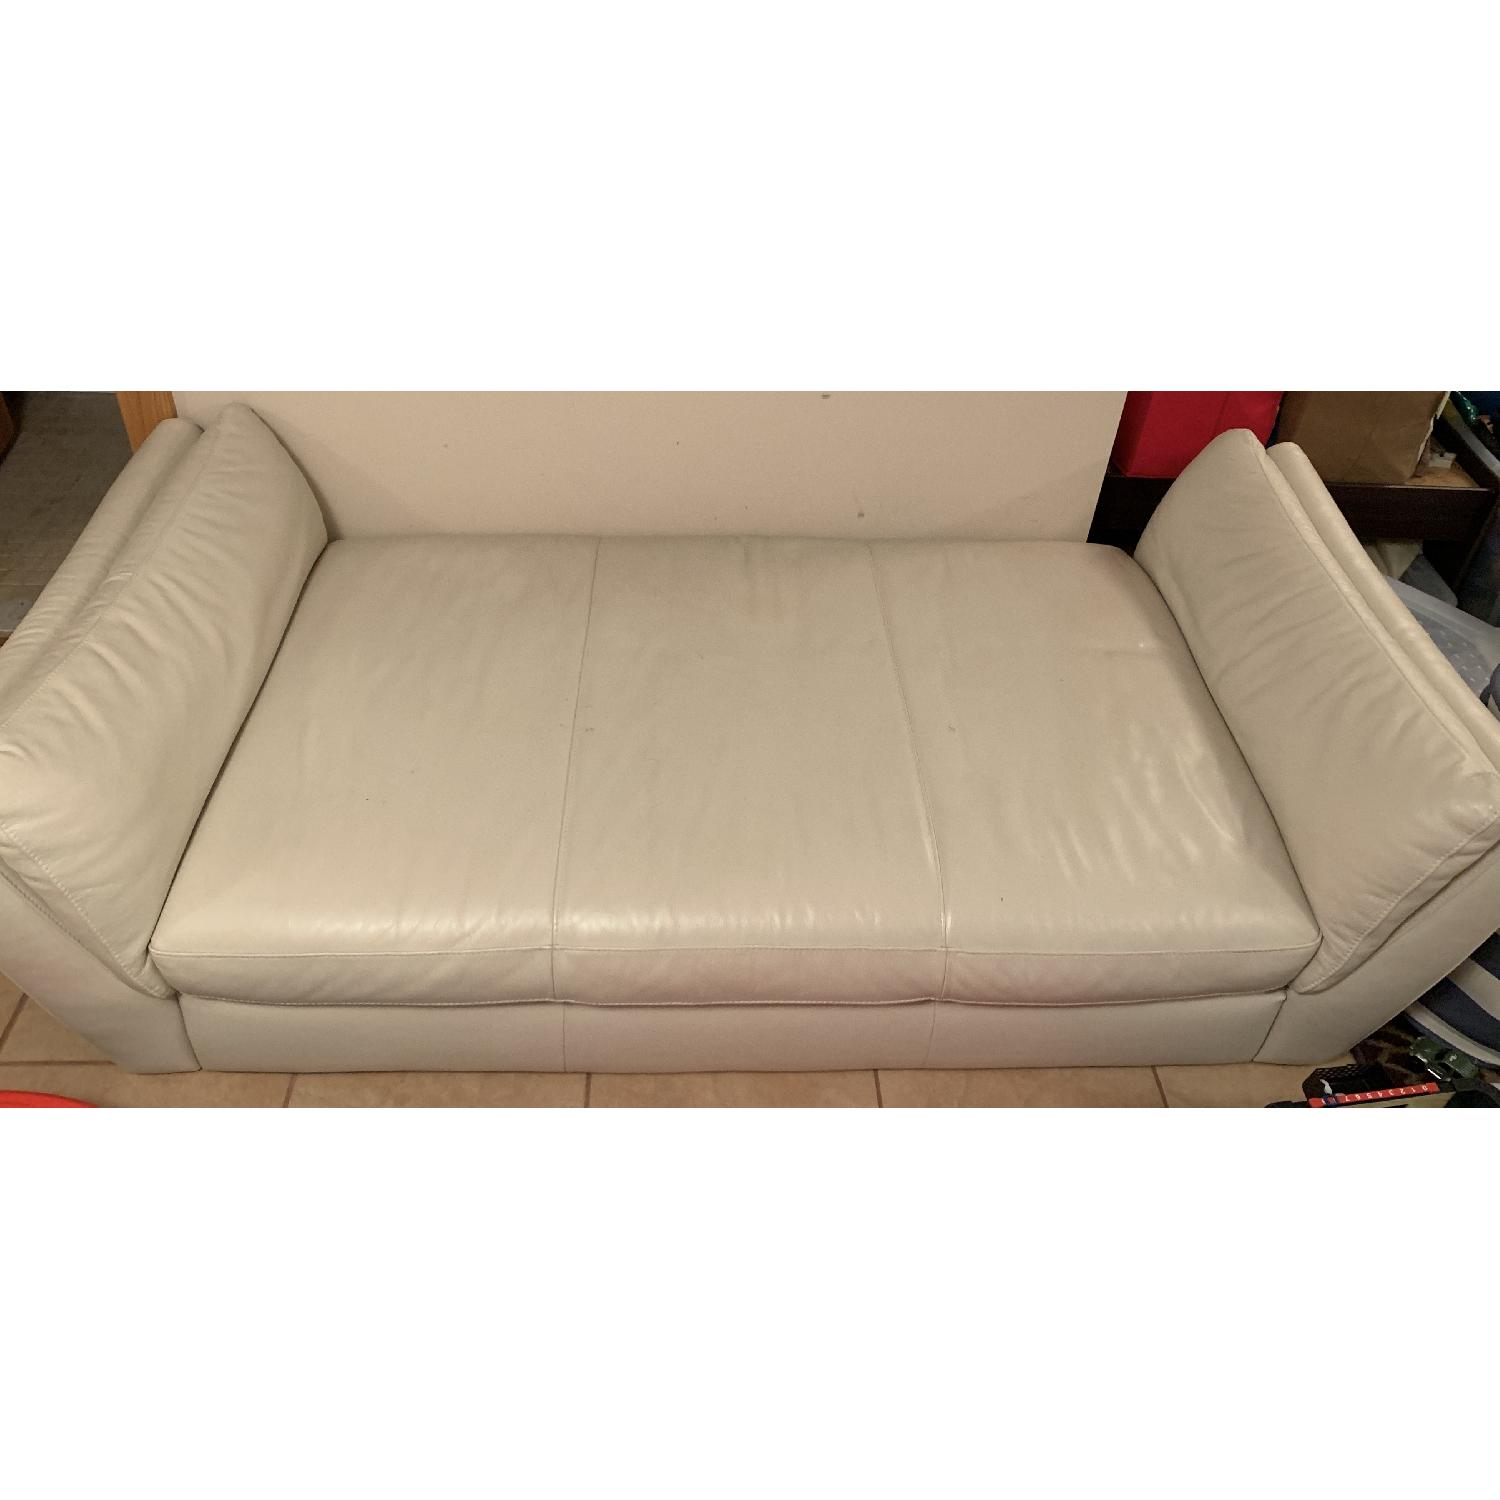 Italsofa Cream Leather Daybed/Chaise Lounge - AptDeco